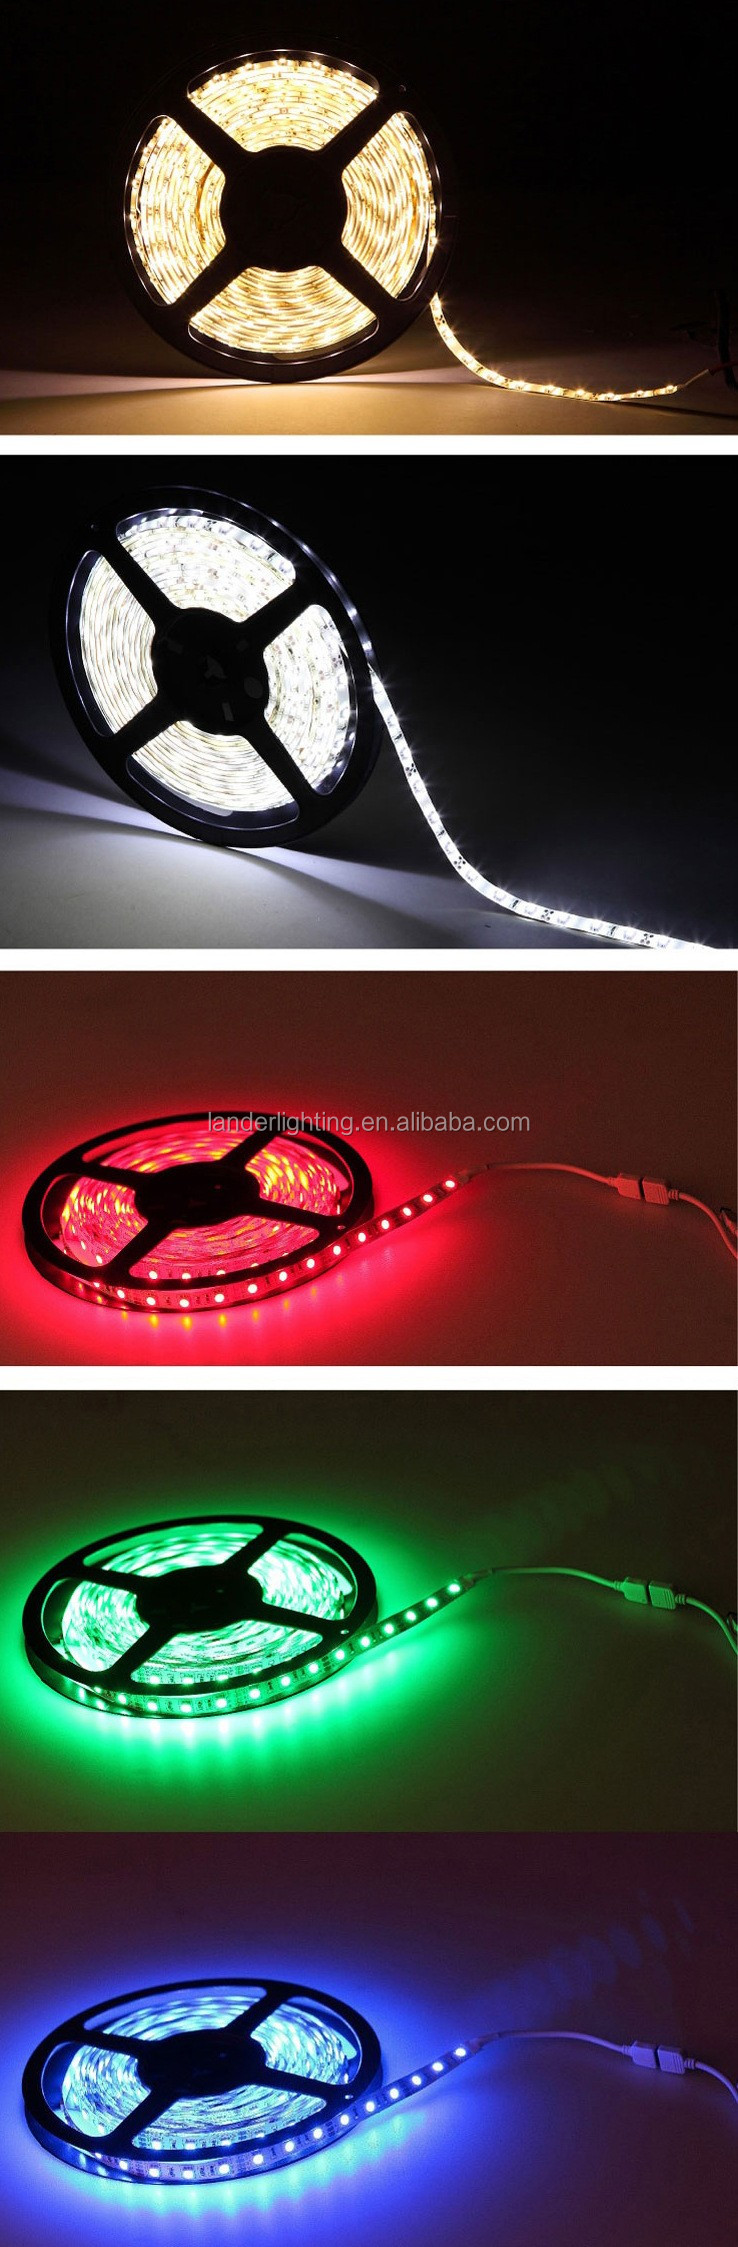 New products china market flashing 60leds/m flexible 3014 addressable led strip light 12v on alibaba